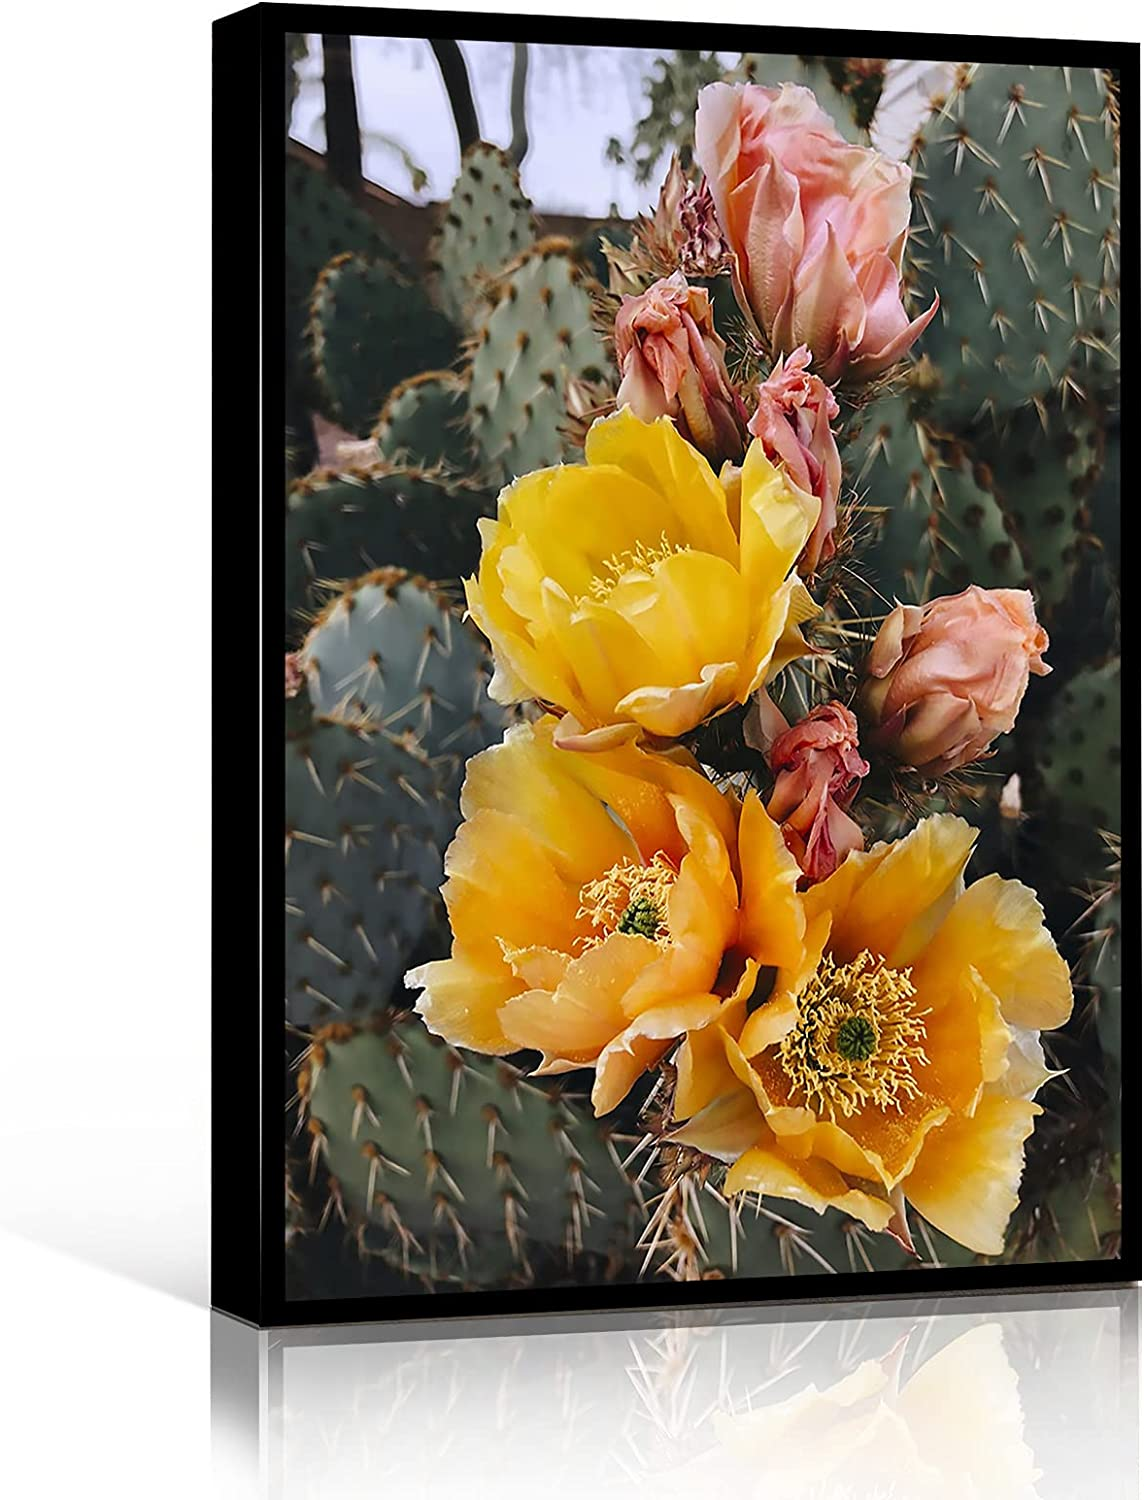 Abstract Oil Painting Wall Art Close up O of Blooming Discount mail order Long-awaited Photograph